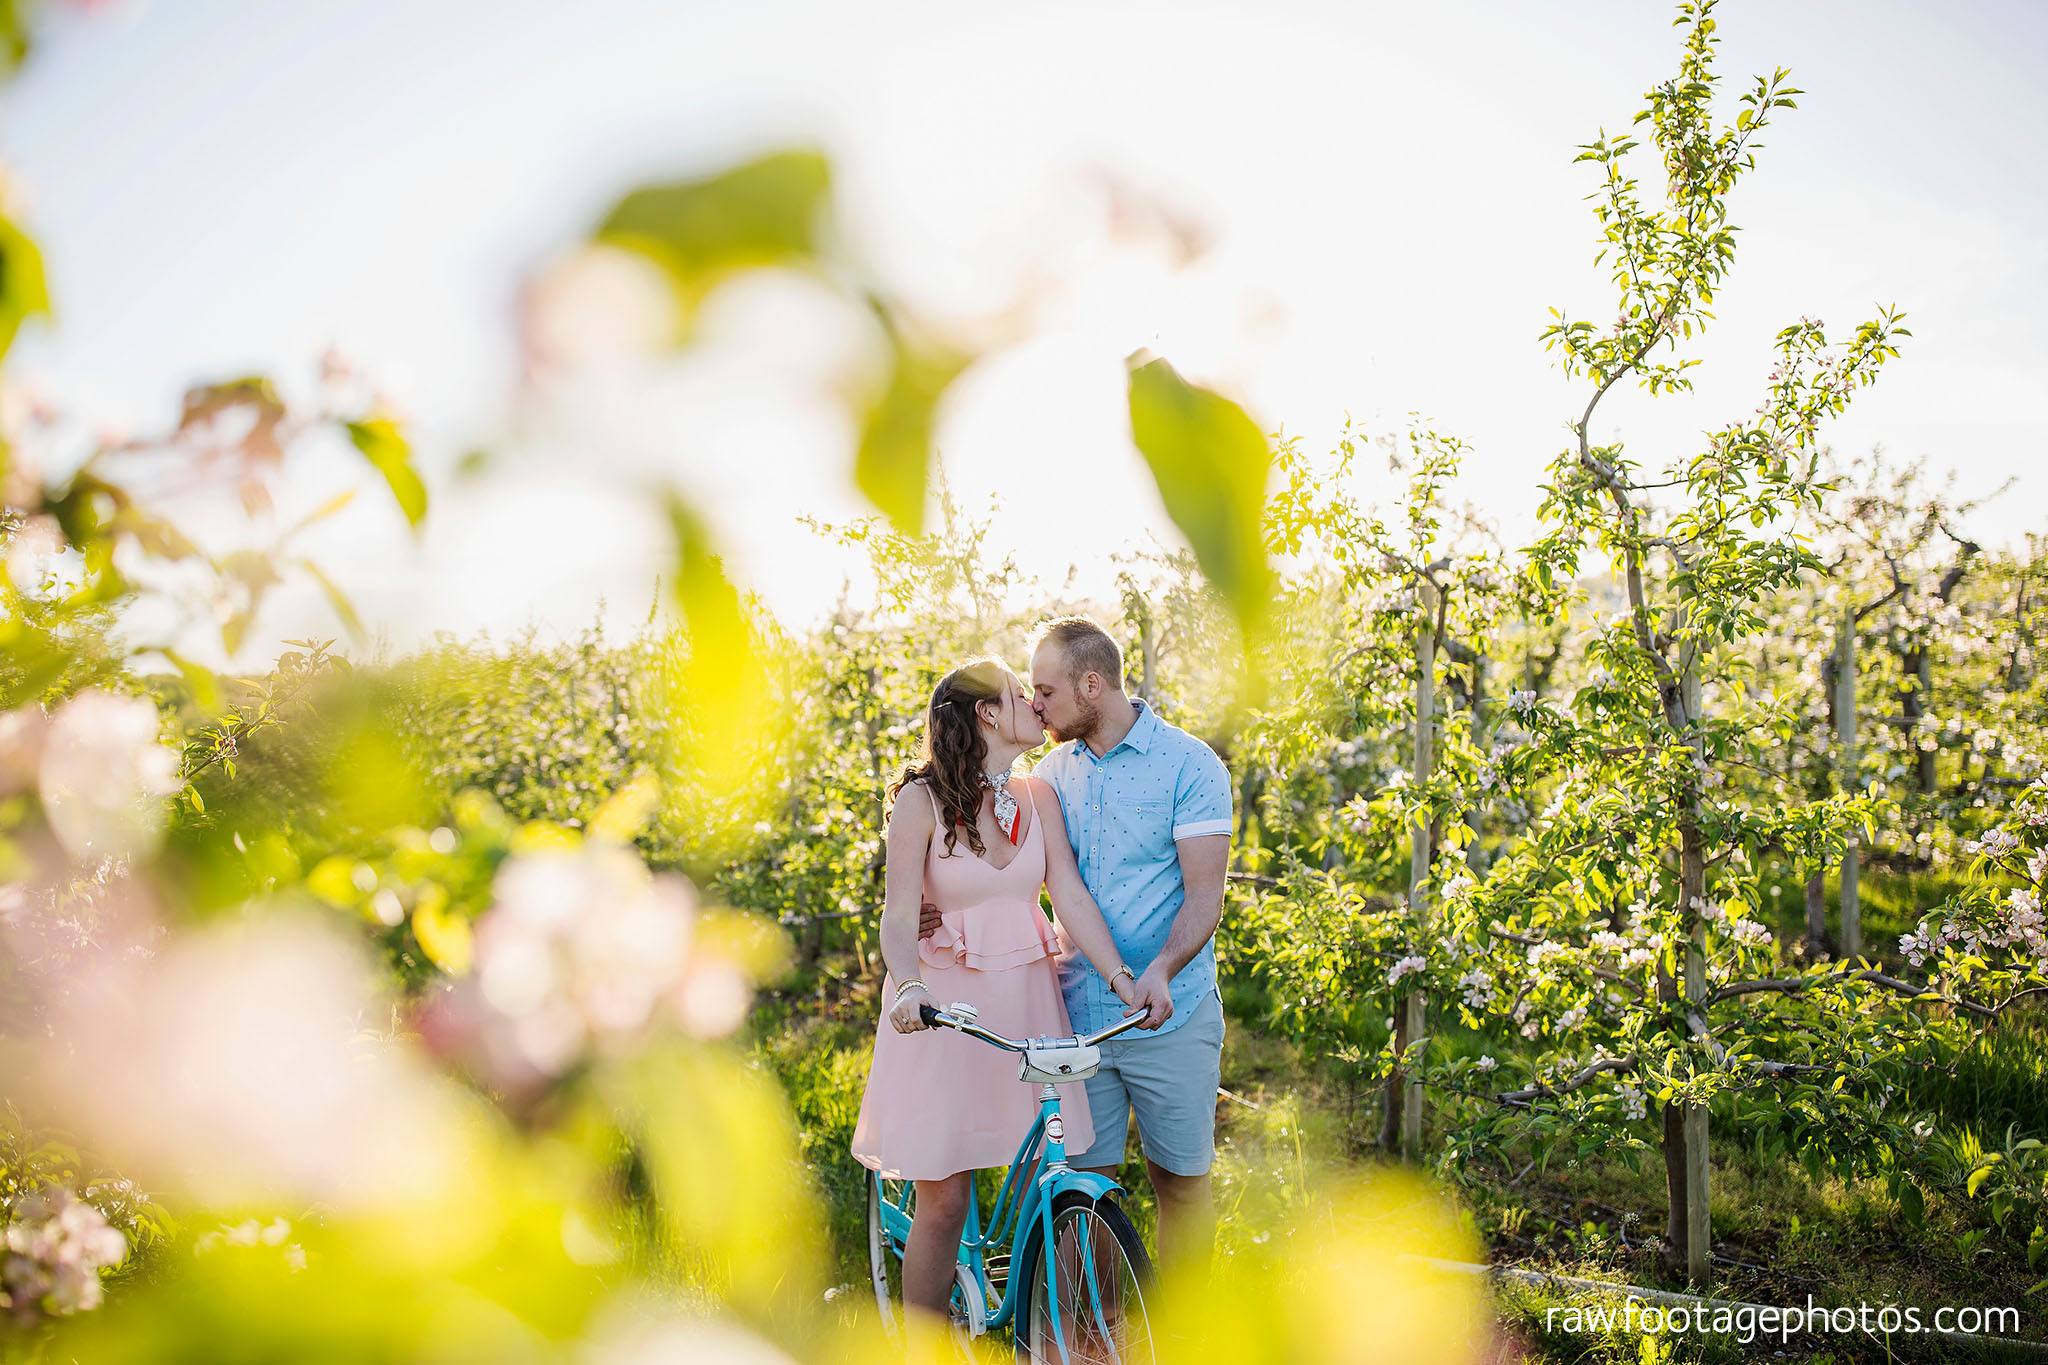 london_ontario_wedding_photographer-raw_footage_photography-engagement_session-airport_session-airplane-balloons-apple_orchard-spring_blooms-apple_blossoms018.jpg